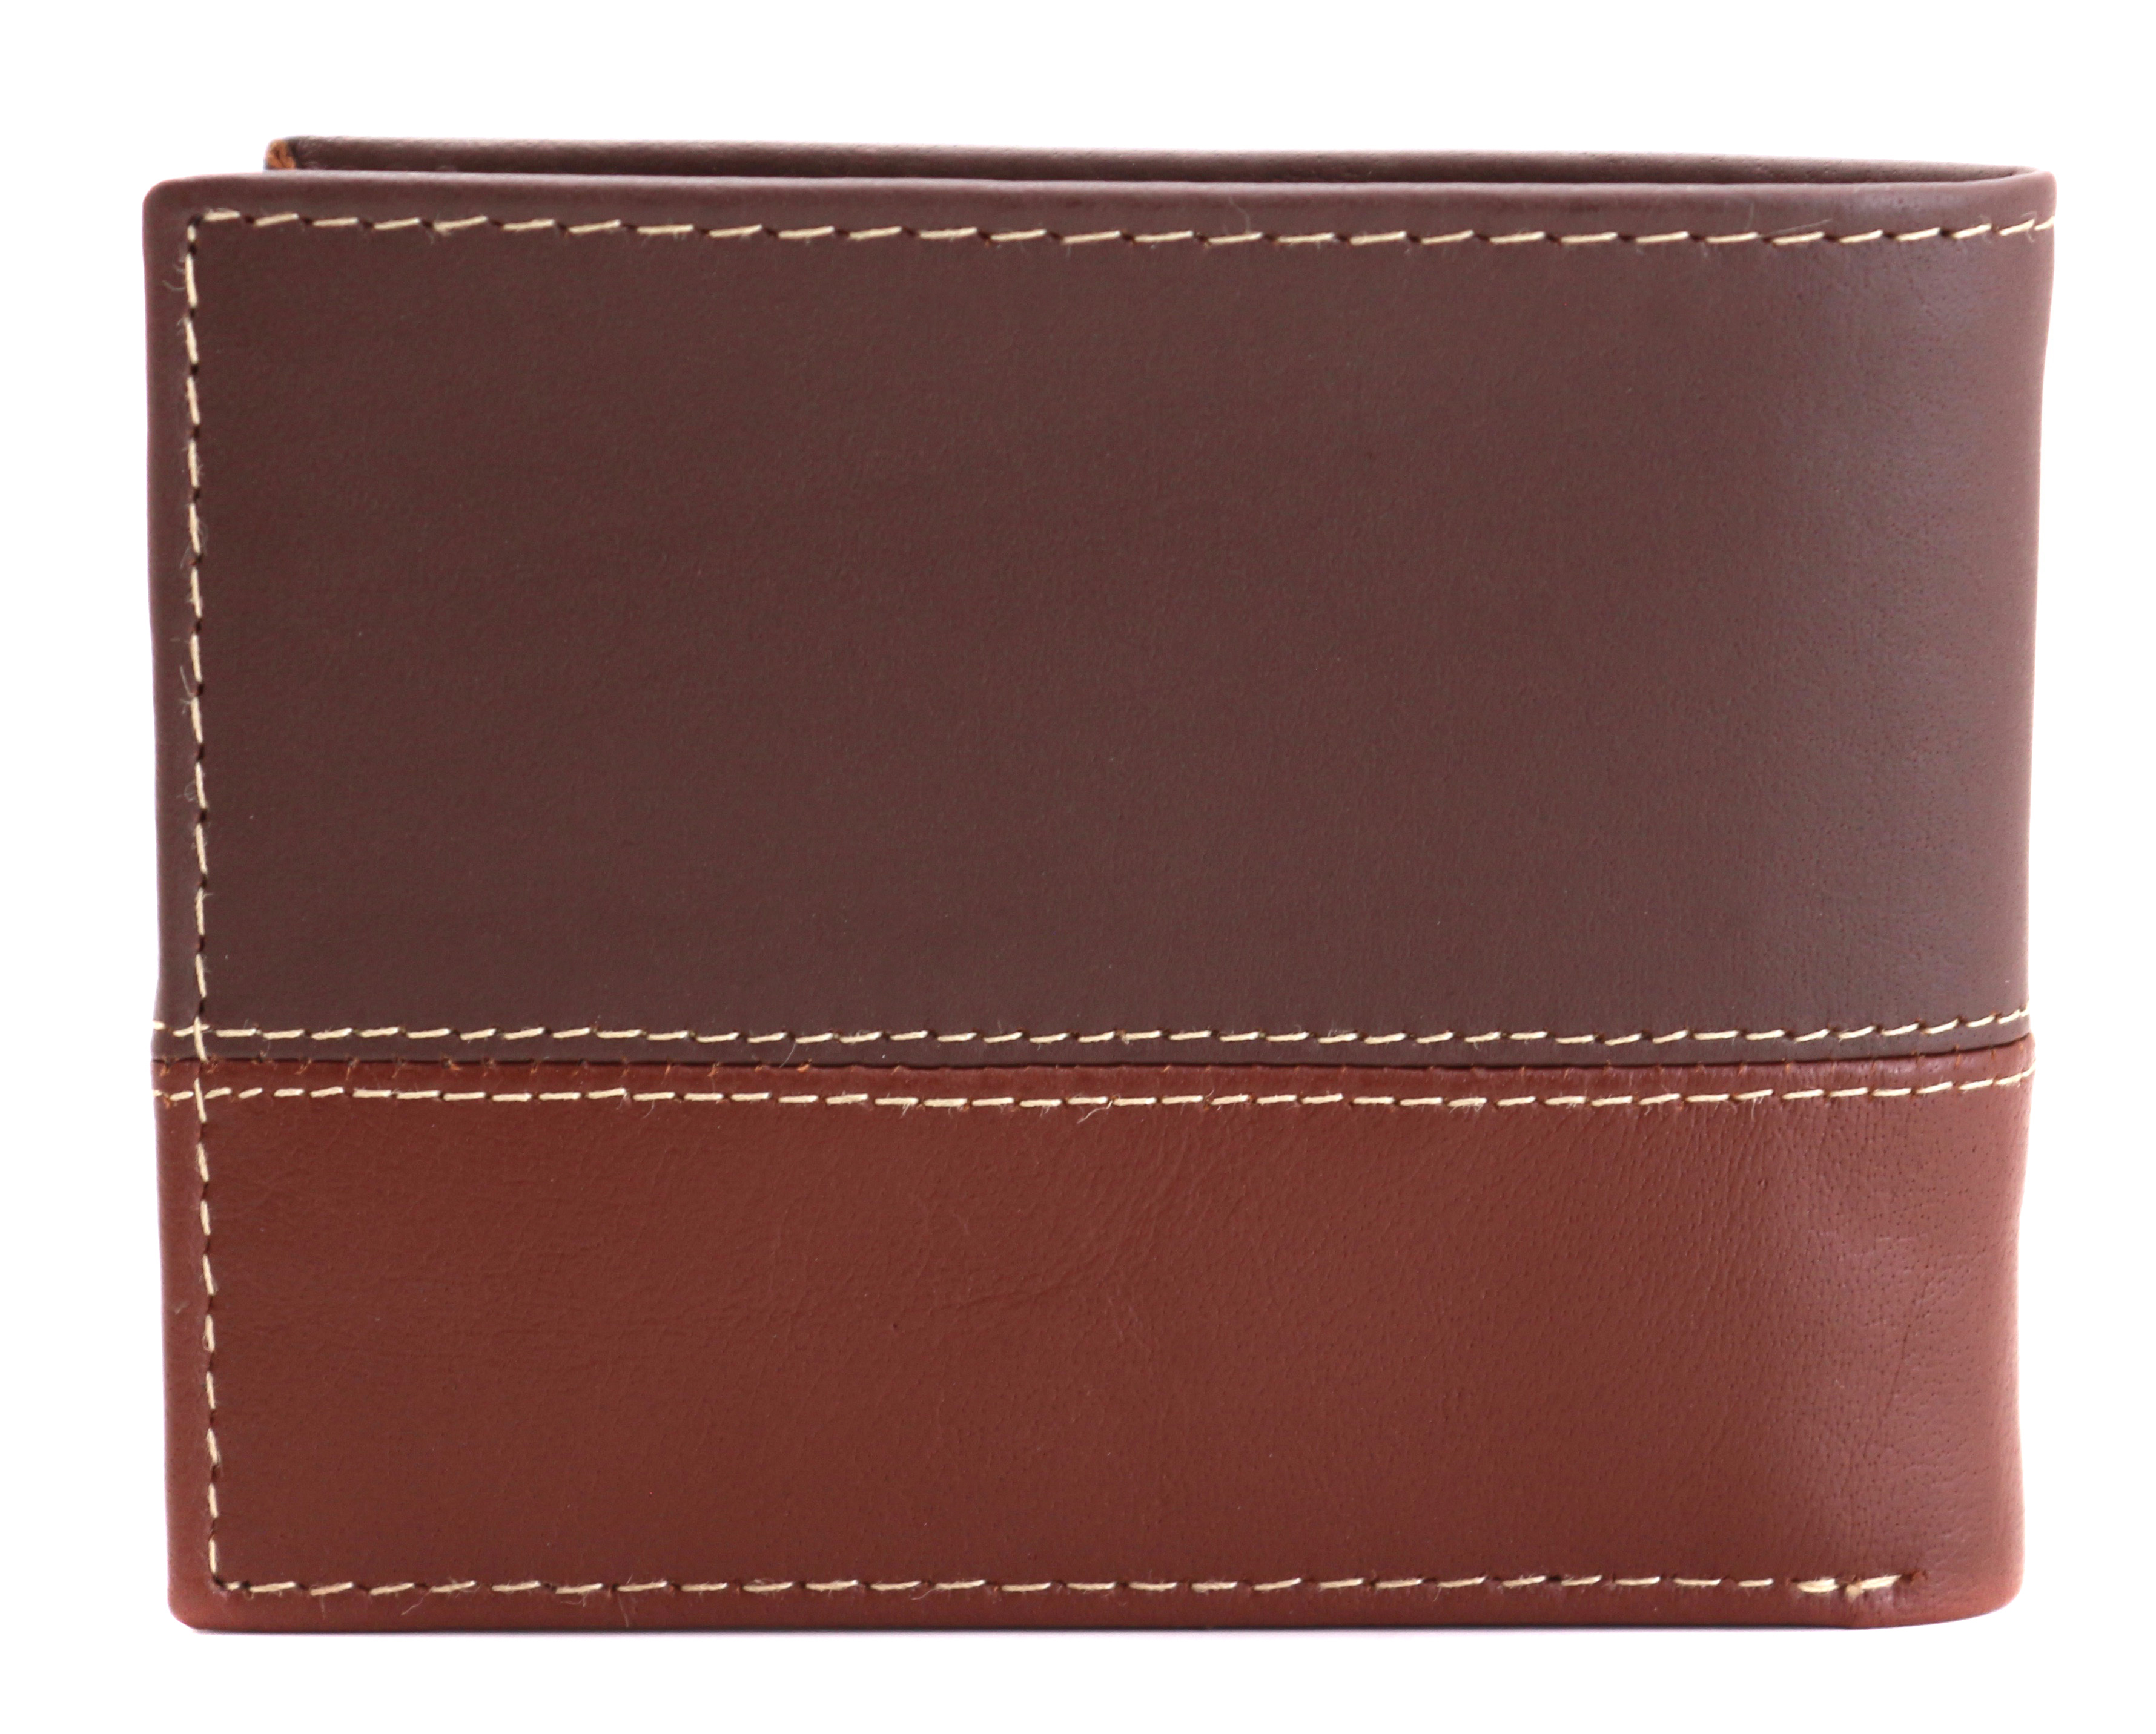 Timberland-Men-039-s-Genuine-Two-Tone-Leather-Credit-Card-Billfold-Commuter-Wallet thumbnail 21